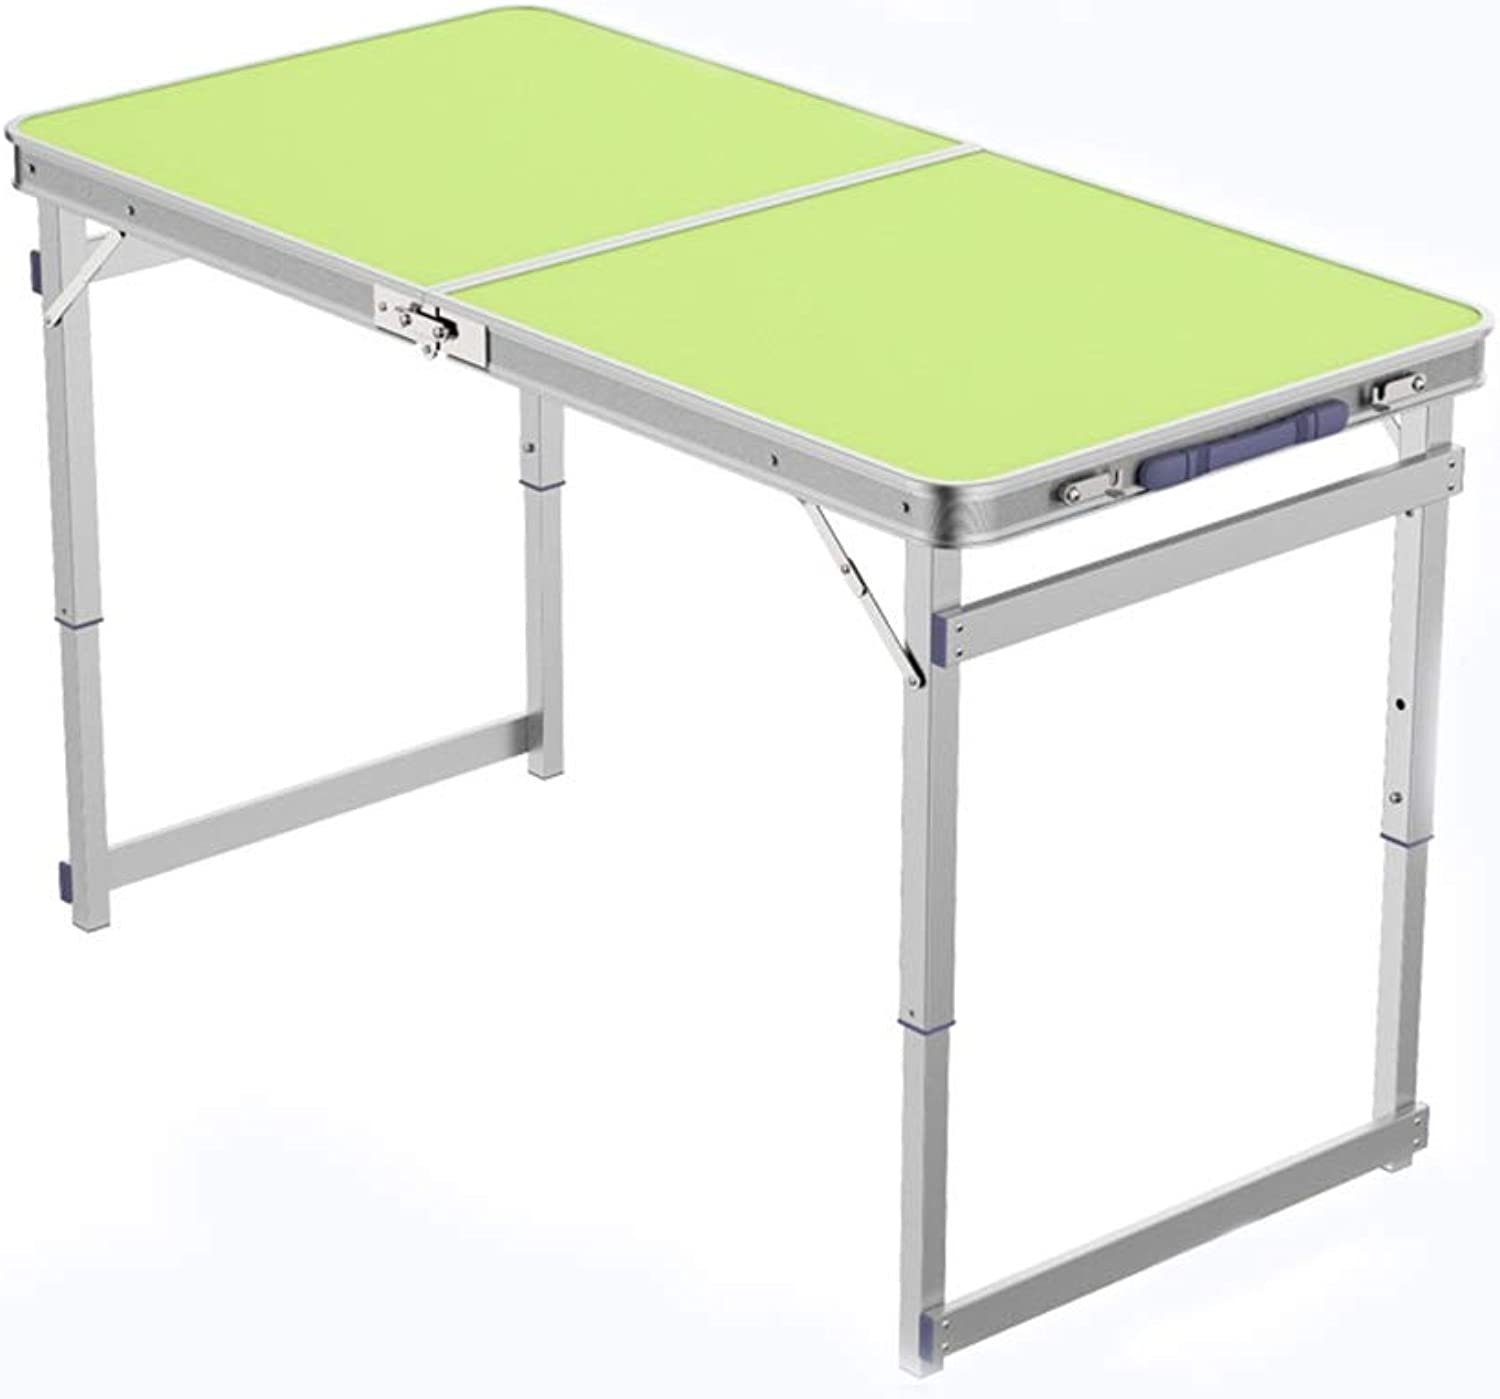 Aluminum Folding Table, Portable and Adjustable Height, Suitable for Camping Party Barbecue (3 colors) (color   Green)